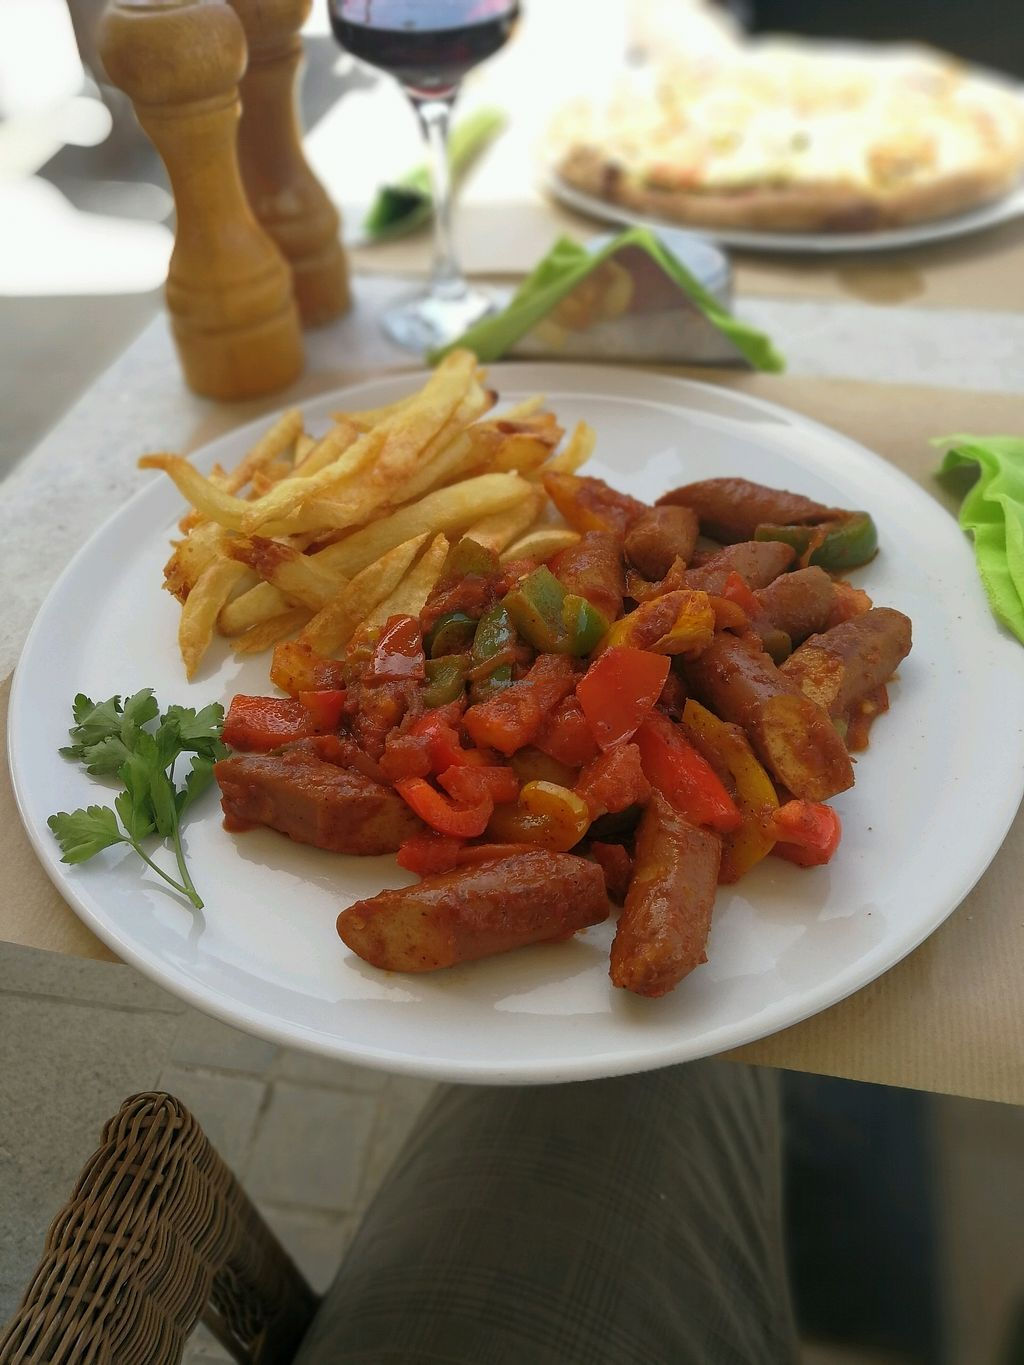 "Photo of V+ S Corner  by <a href=""/members/profile/JohnVanillah"">JohnVanillah</a> <br/>vegetarian sausages with mixed peppers <br/> April 12, 2018  - <a href='/contact/abuse/image/106078/384597'>Report</a>"